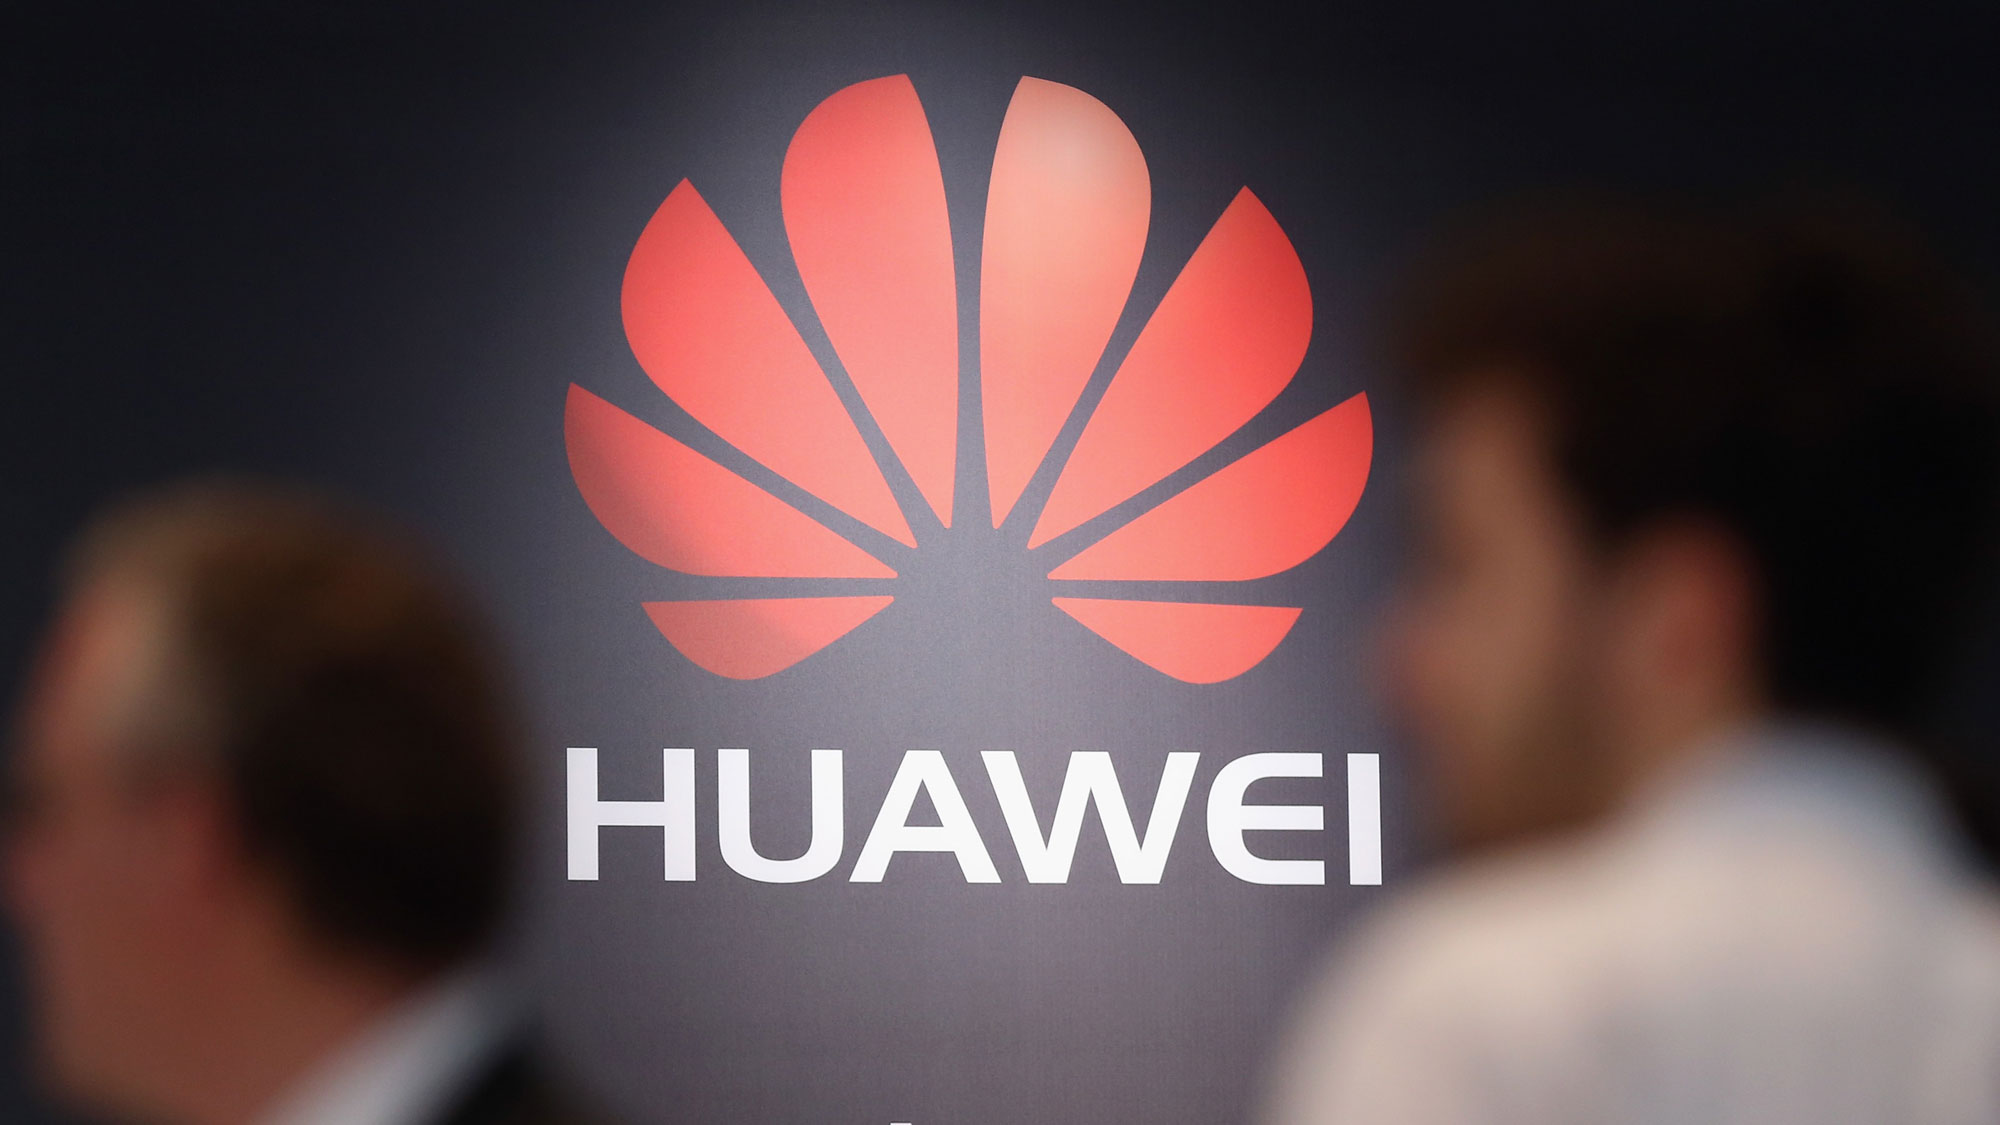 Huawei CFO is arrested in Canada over Iran links